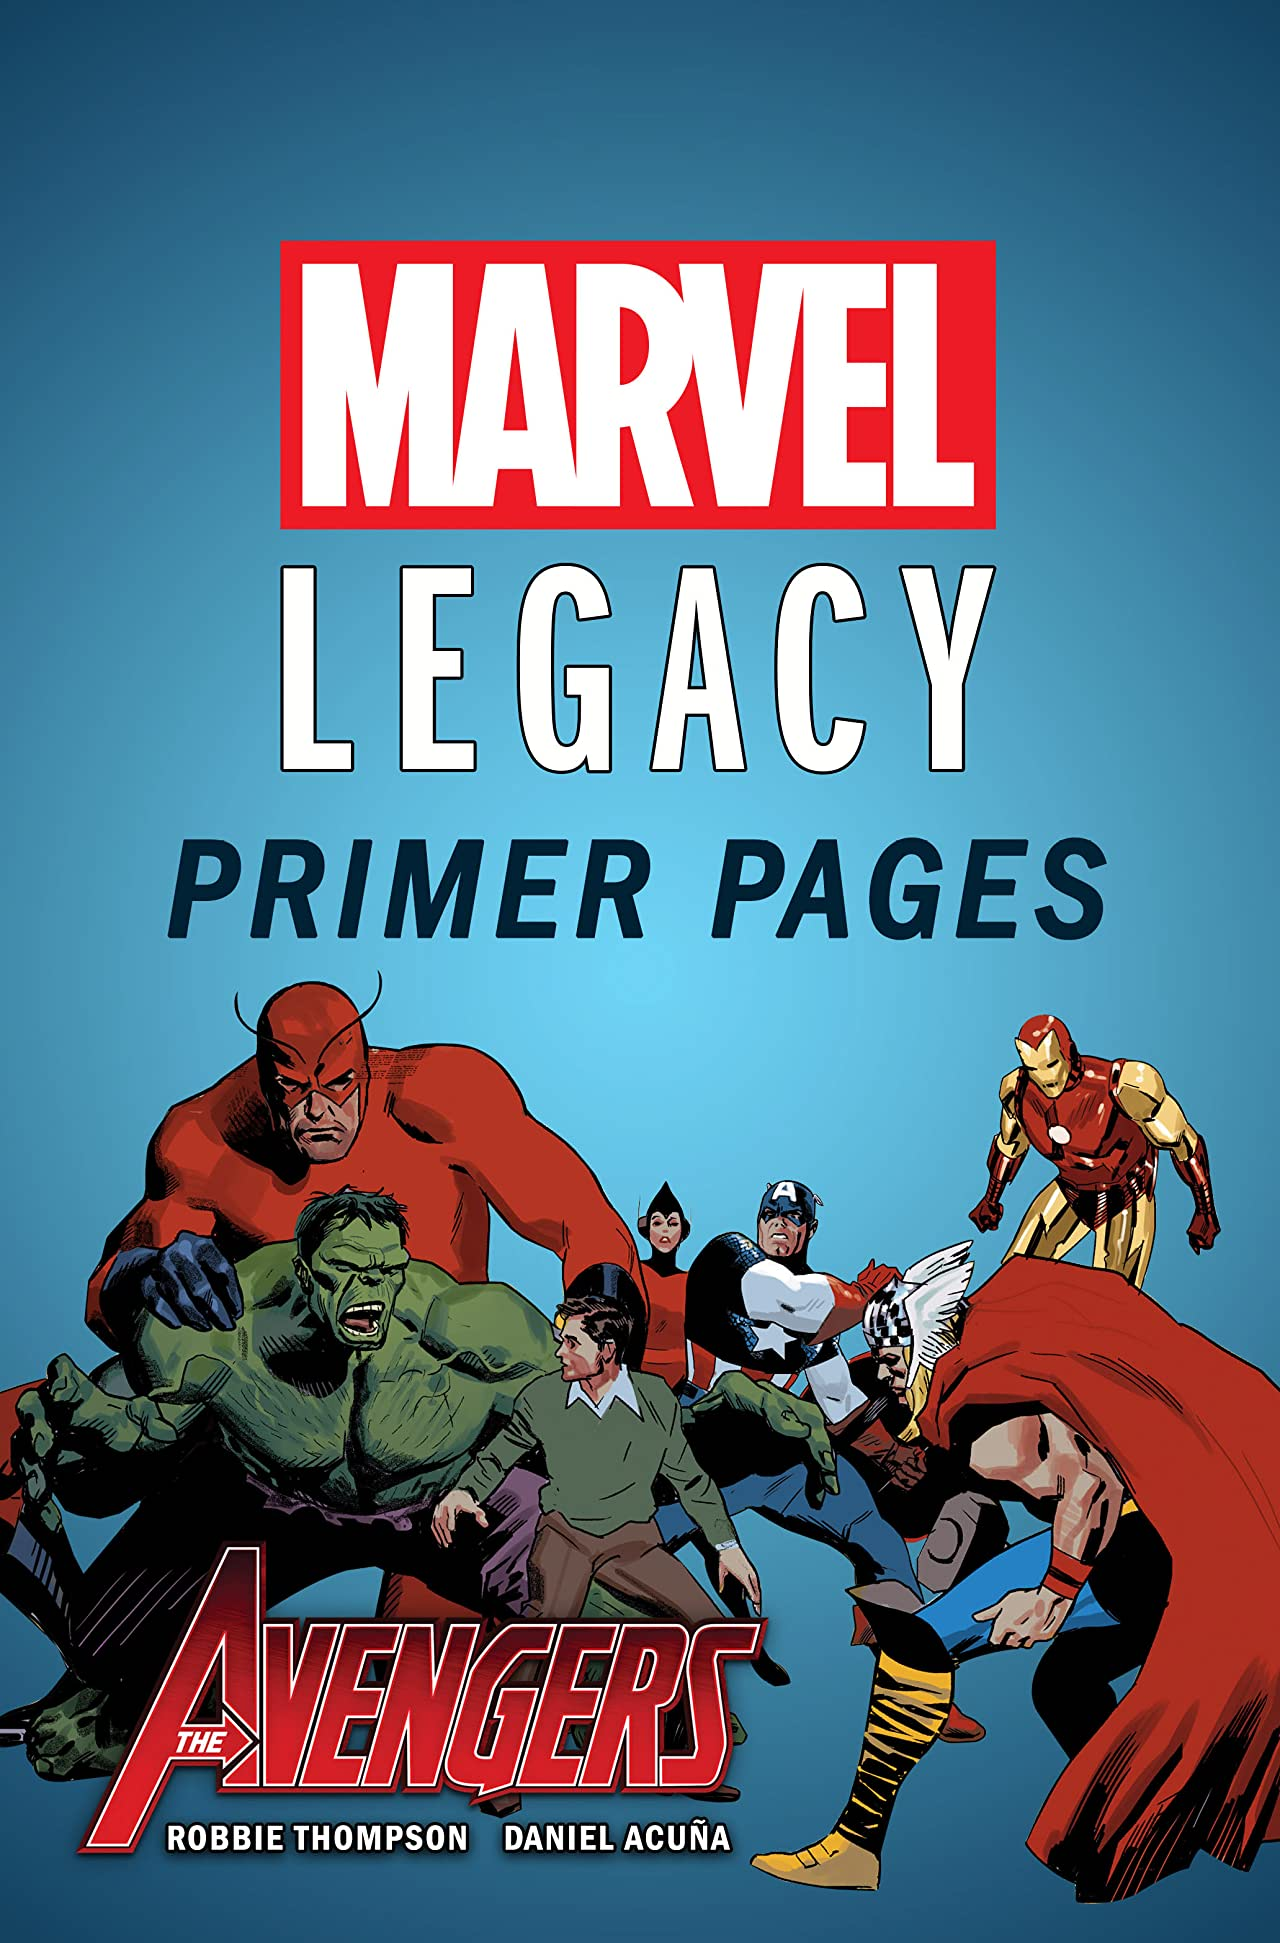 Avengers - Marvel Legacy Primer Pages